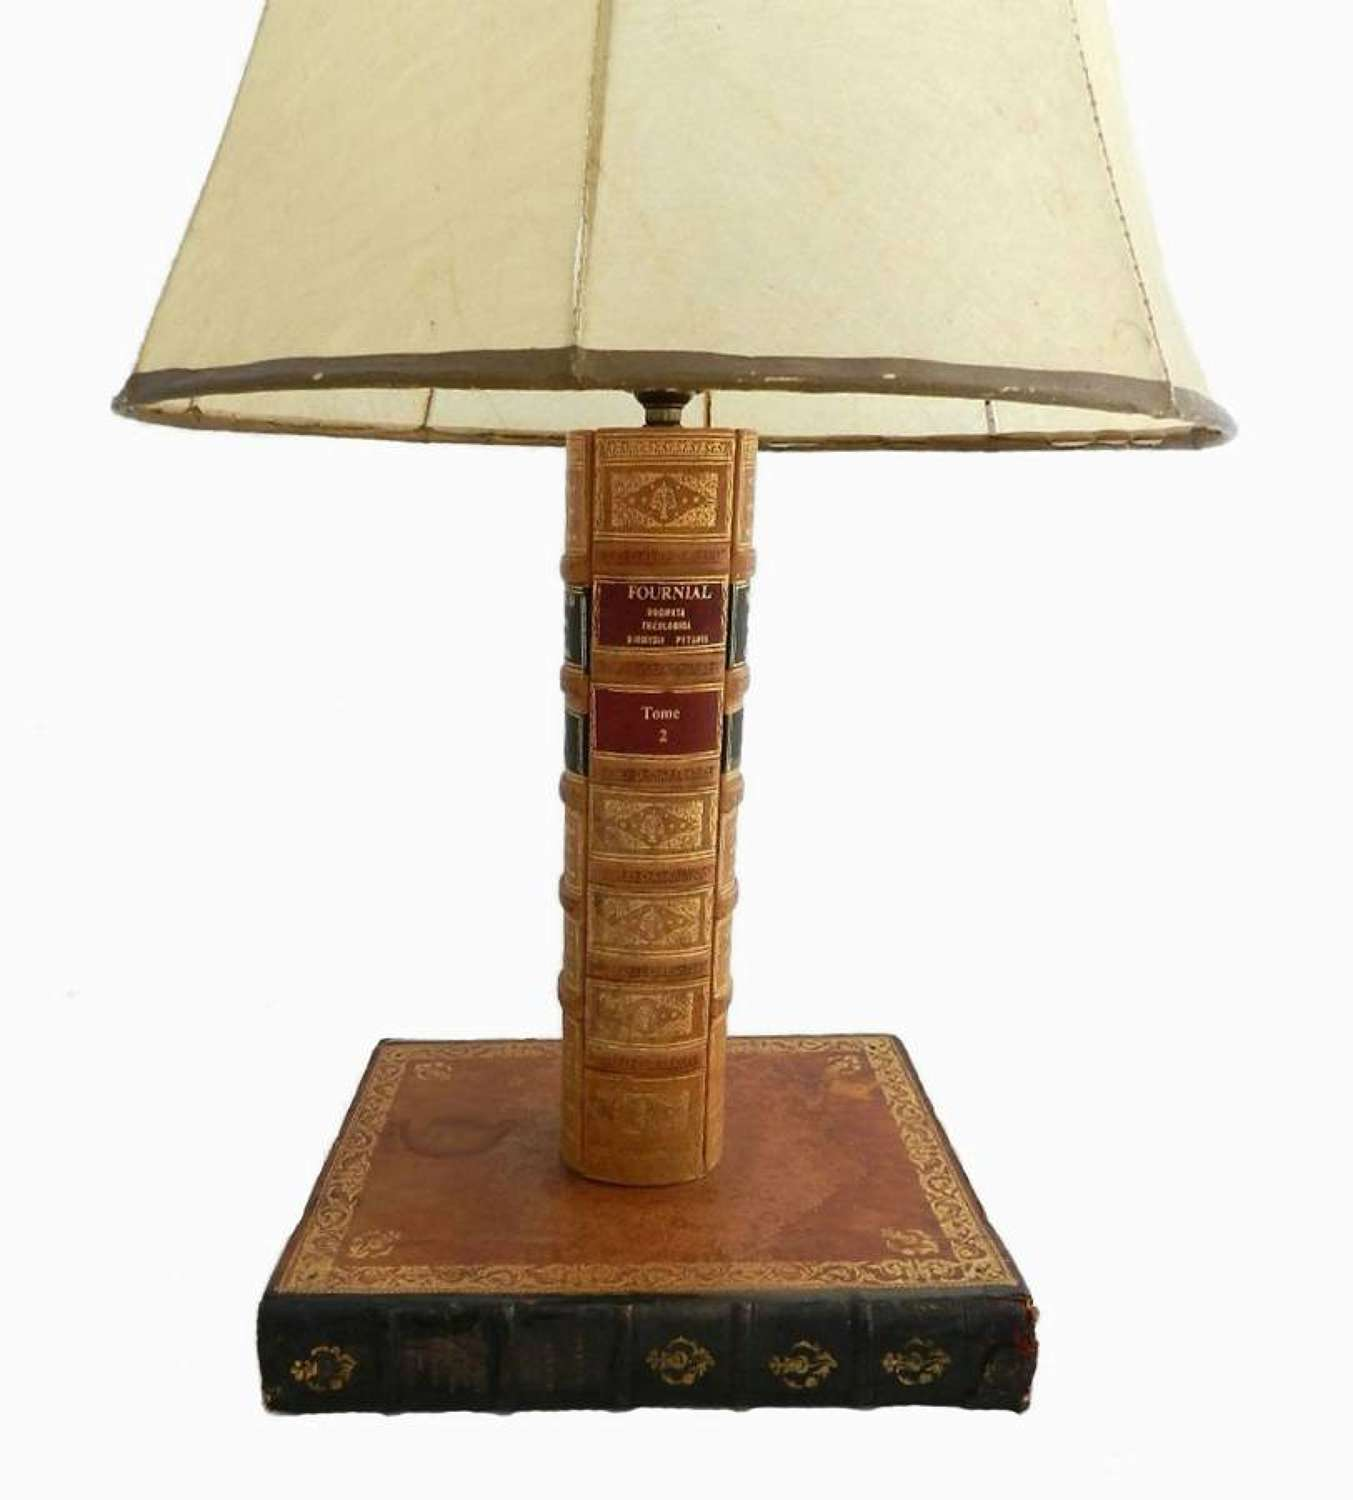 French Antique Book Lamp Desk or Table Light